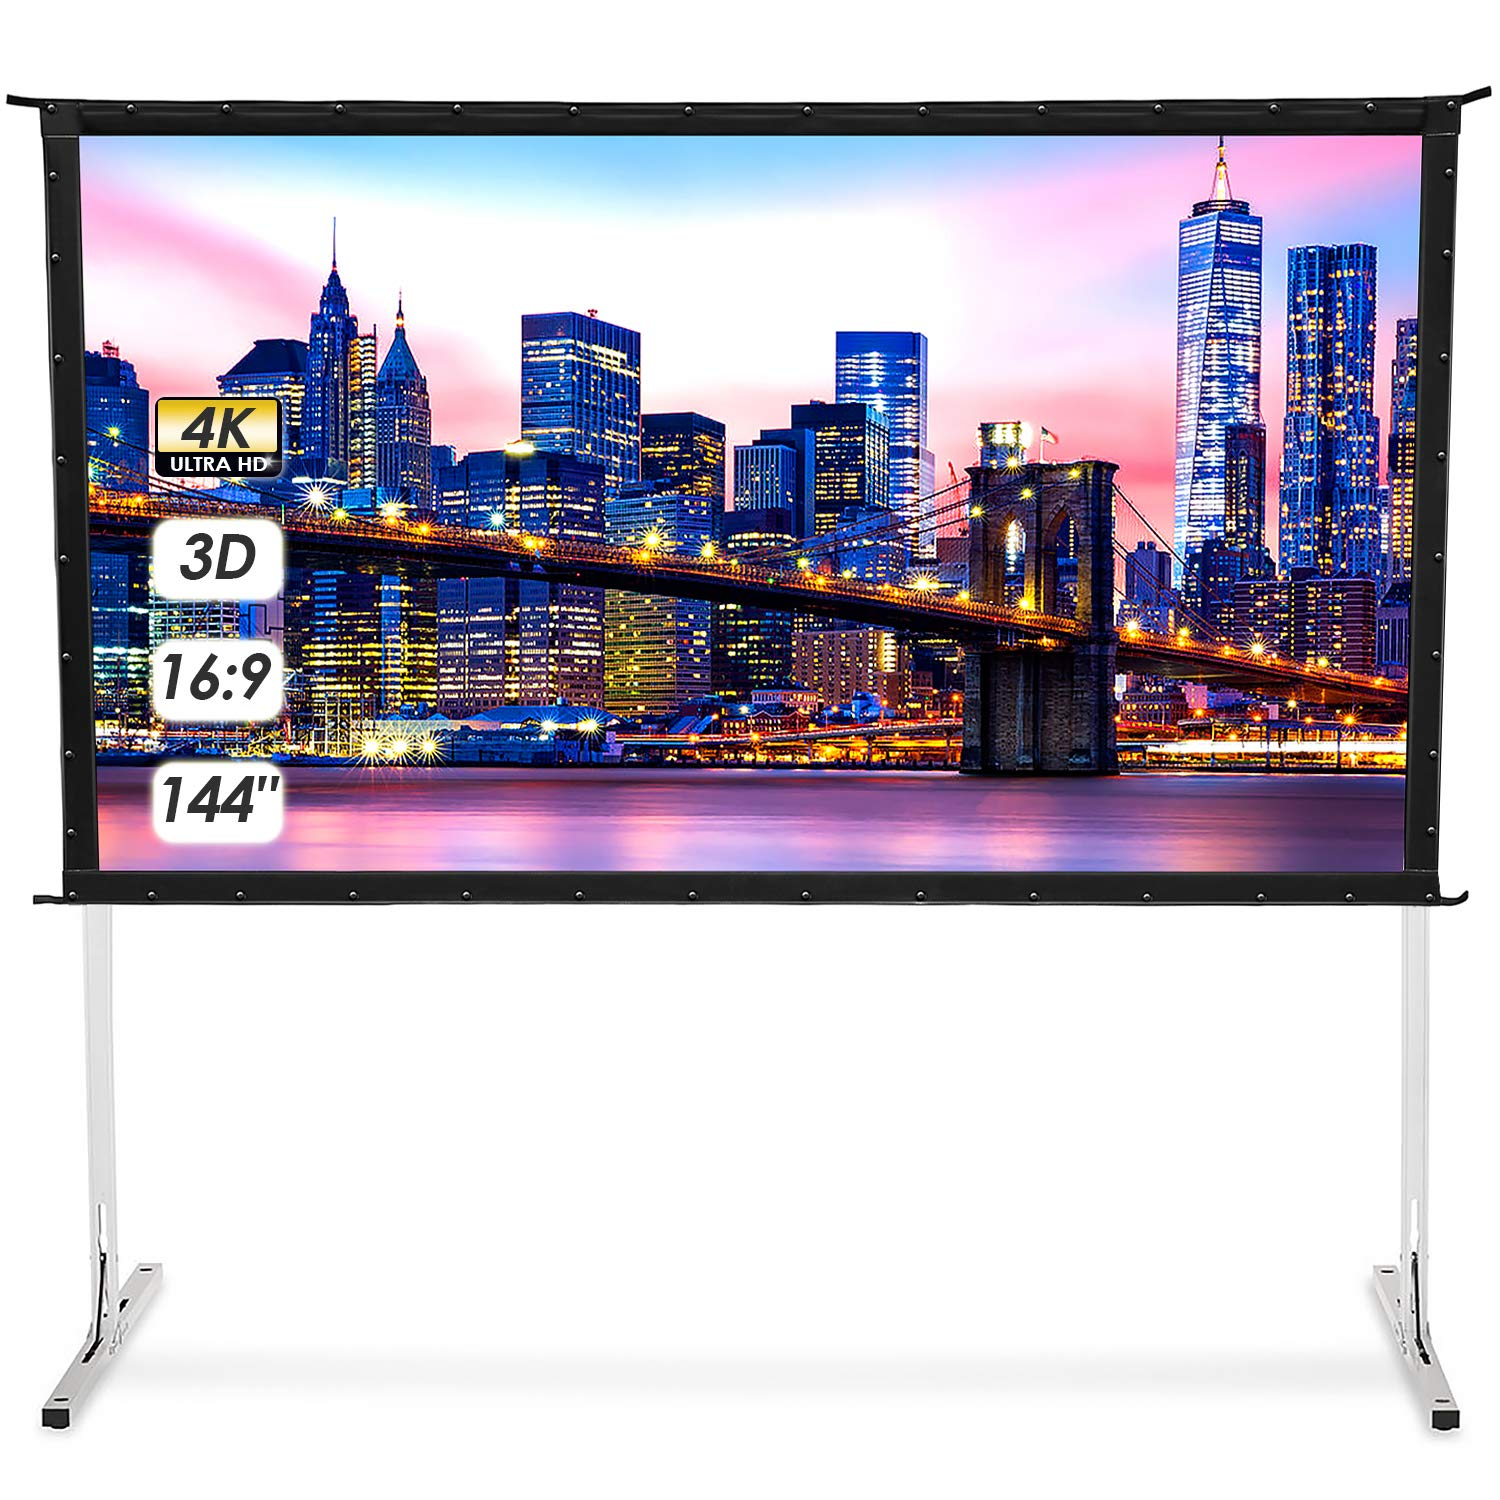 Outdoor Projector Screen with Stand - 144'' 4K HD 3D Portable Movie Screen 16:9 TUSY Folding Projection Screens for Home Theater Gaming Cinema Backyard